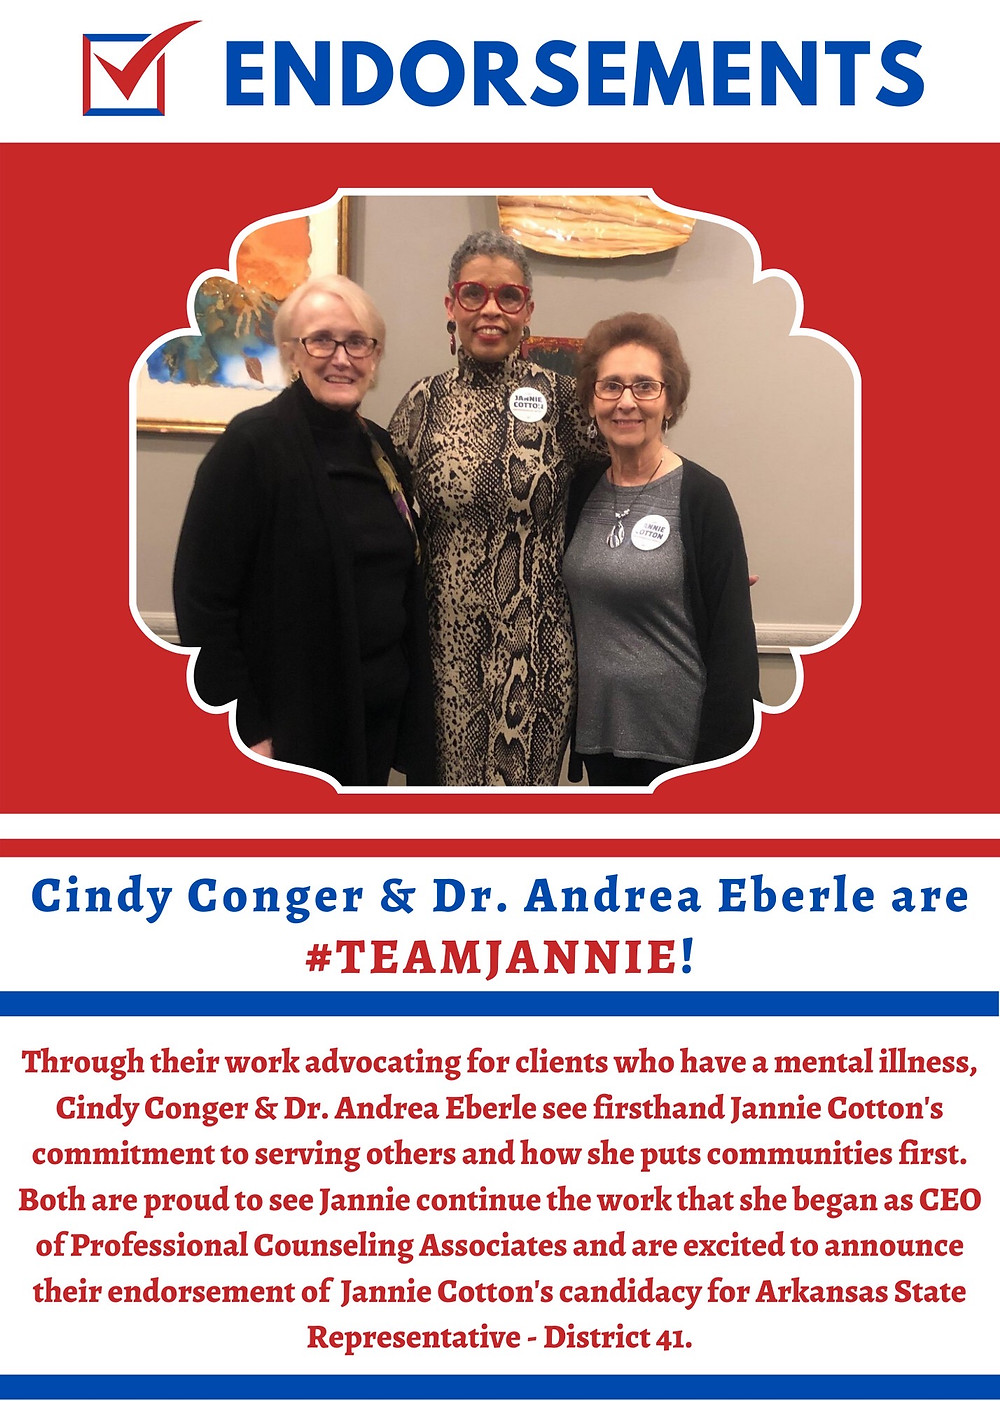 Cindy Conger & Dr. Andrea Eberle with Candidate Jannie Cotton